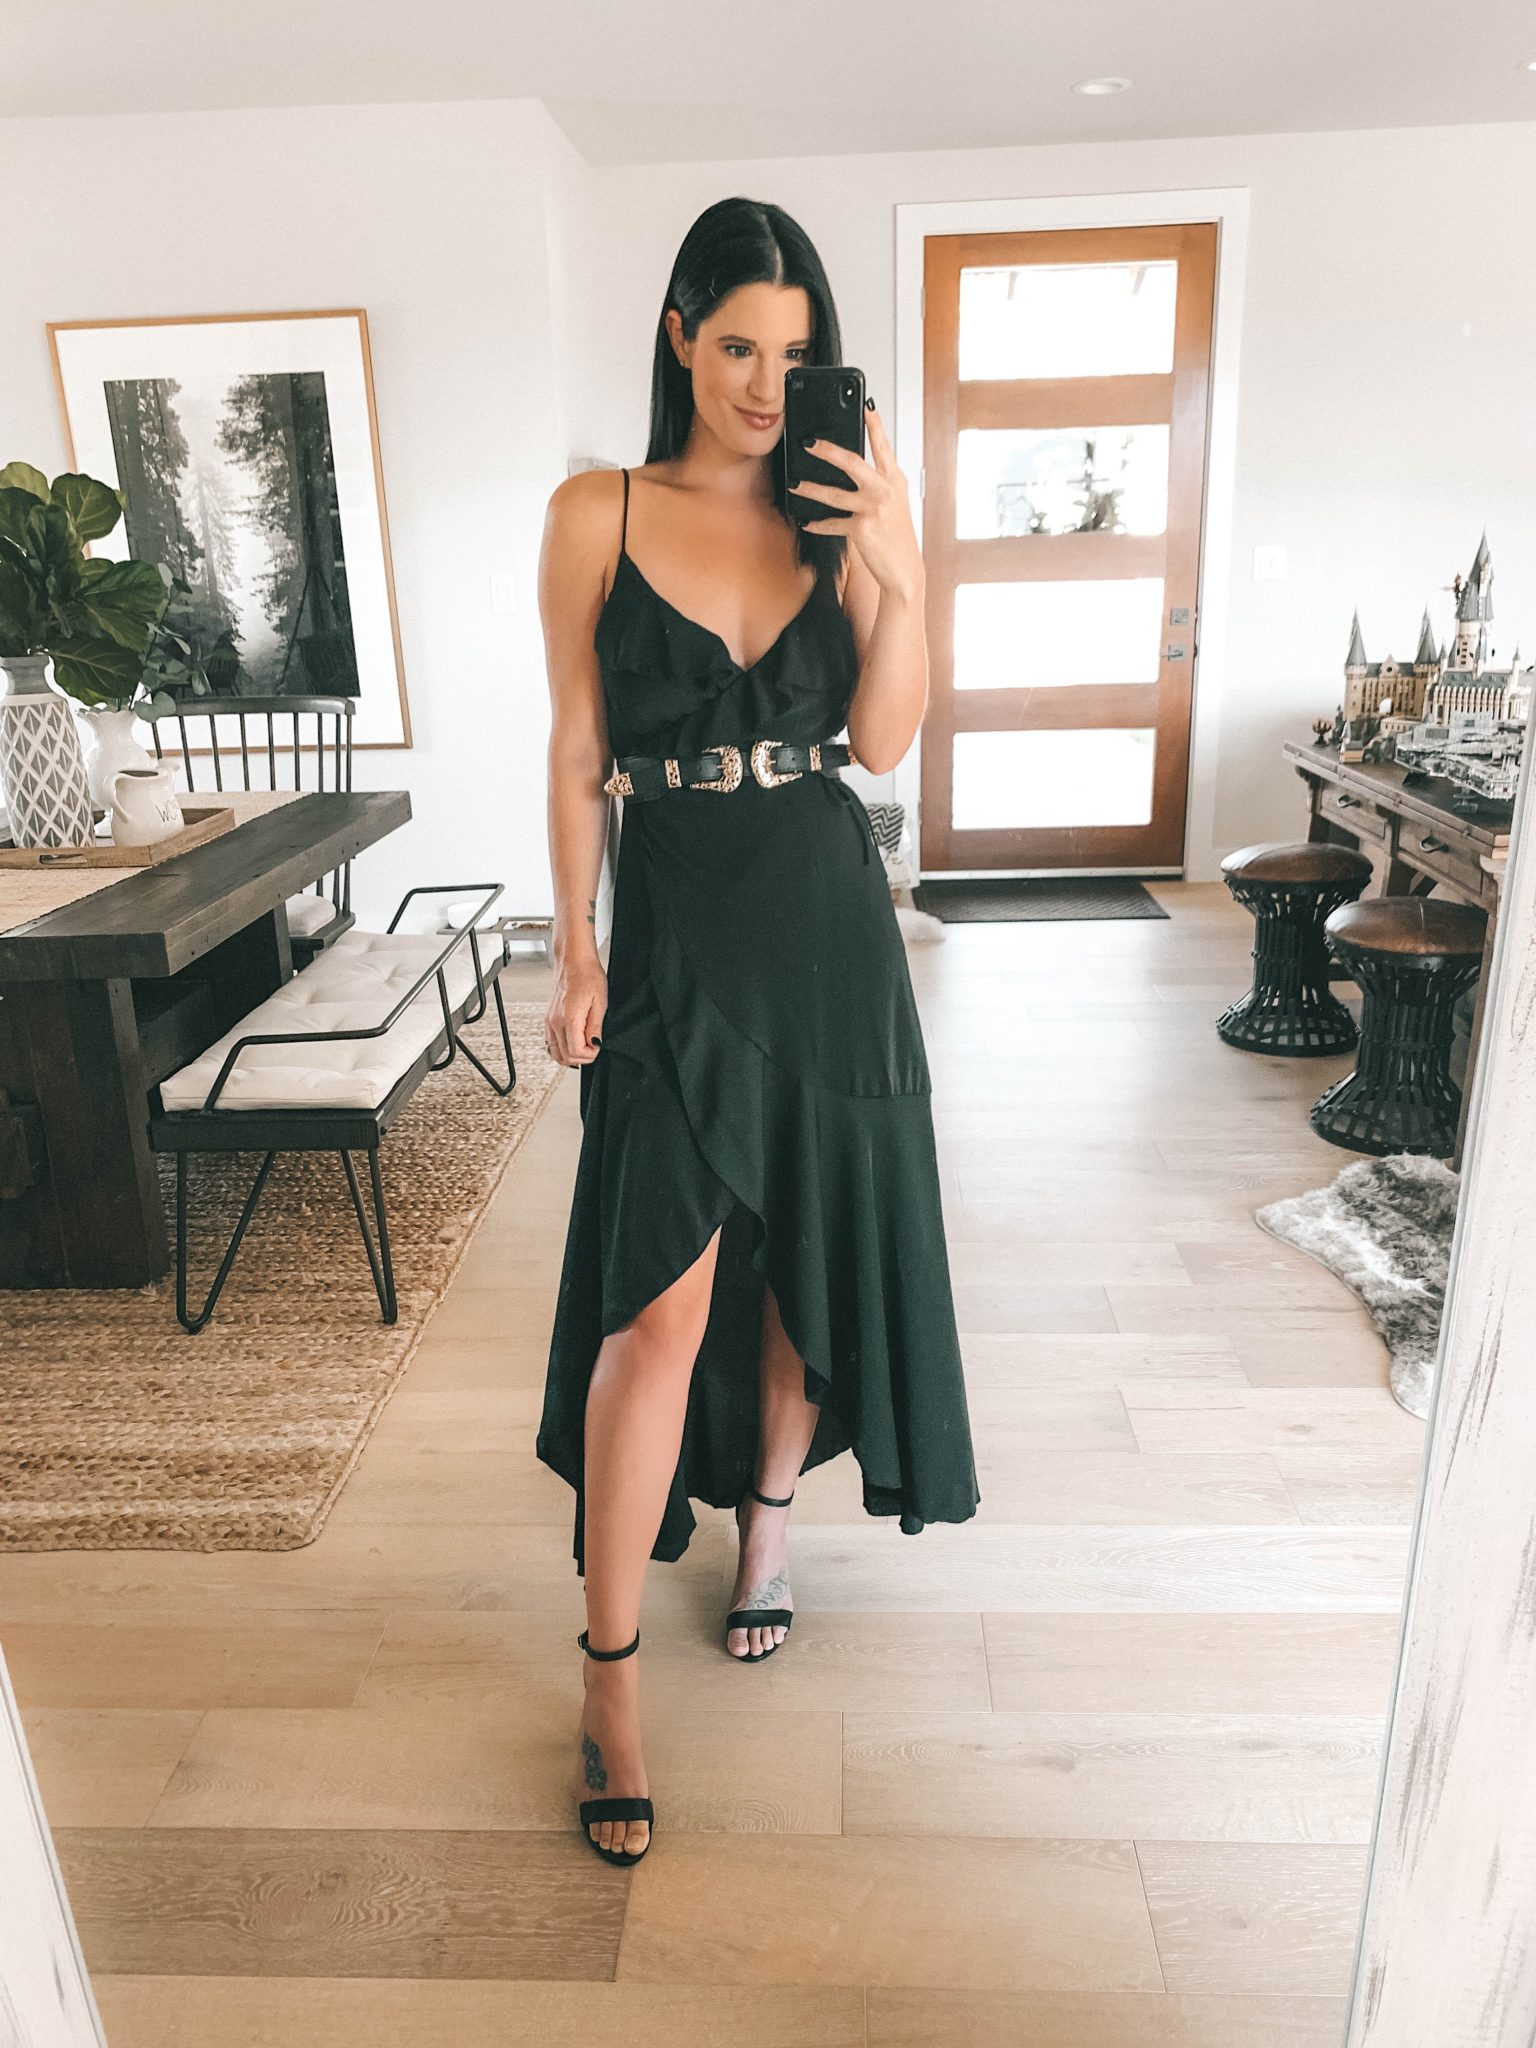 Transition Your Summer Looks Into Fall with Princess Polly Clothing by popular Austin fashion blog, Dressed to Kill: image of a woman wearing a Princess Polly Ready or Not Belt and black high-low dress